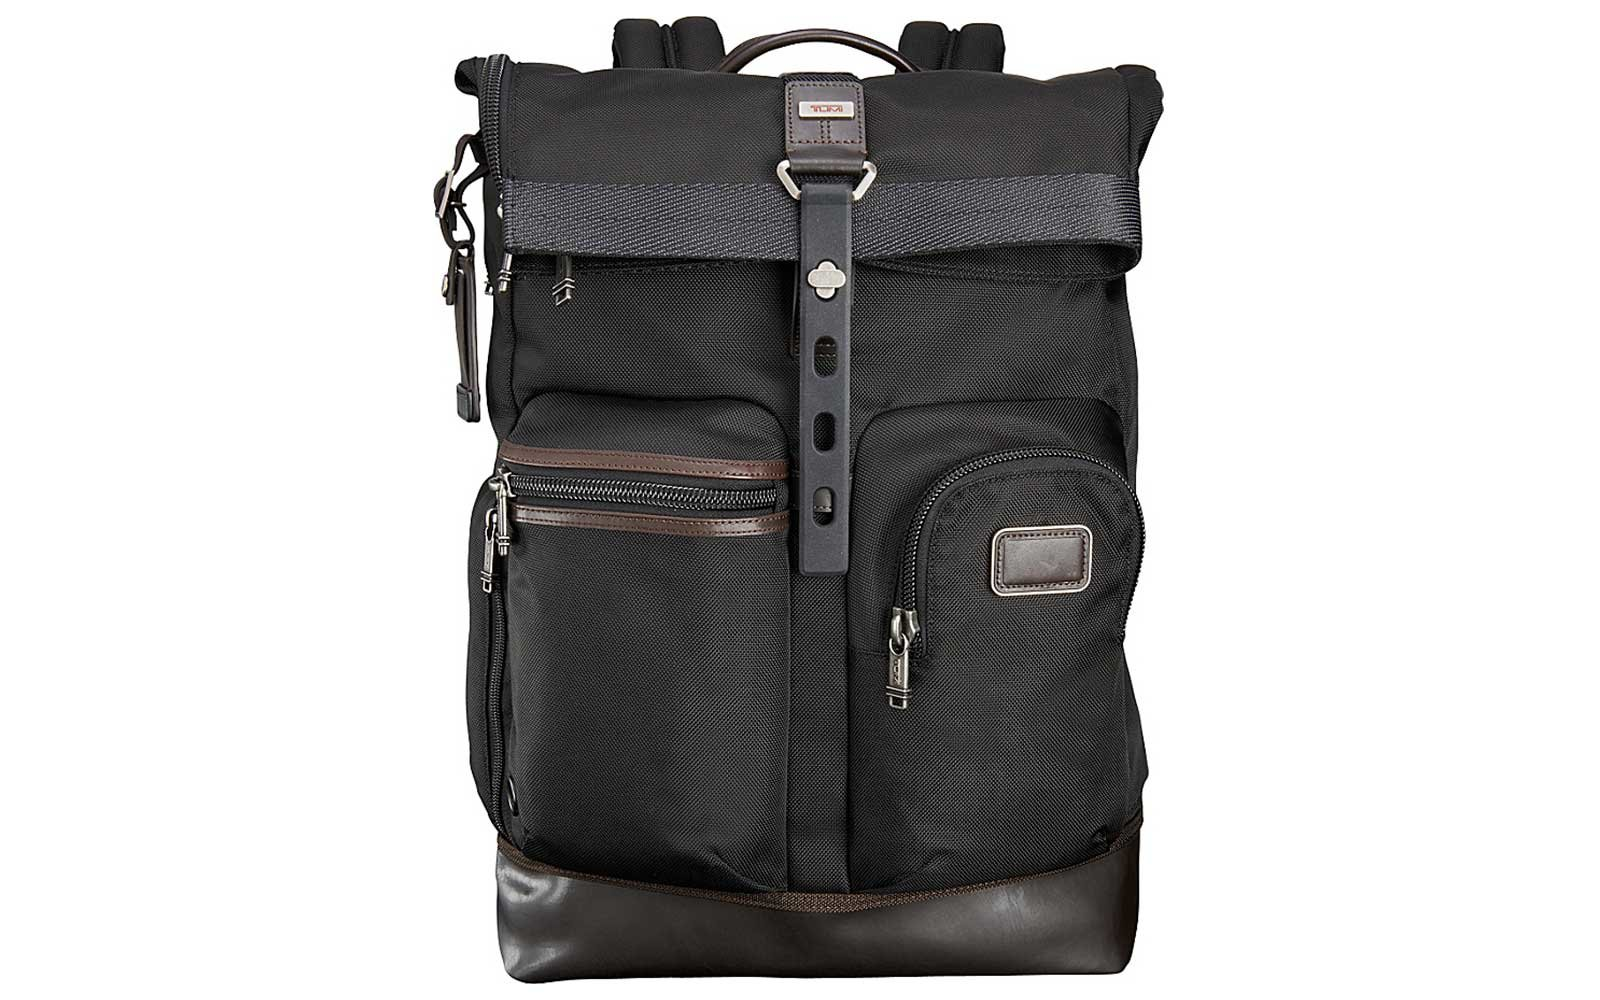 Top Roll Backpacks by Tumi